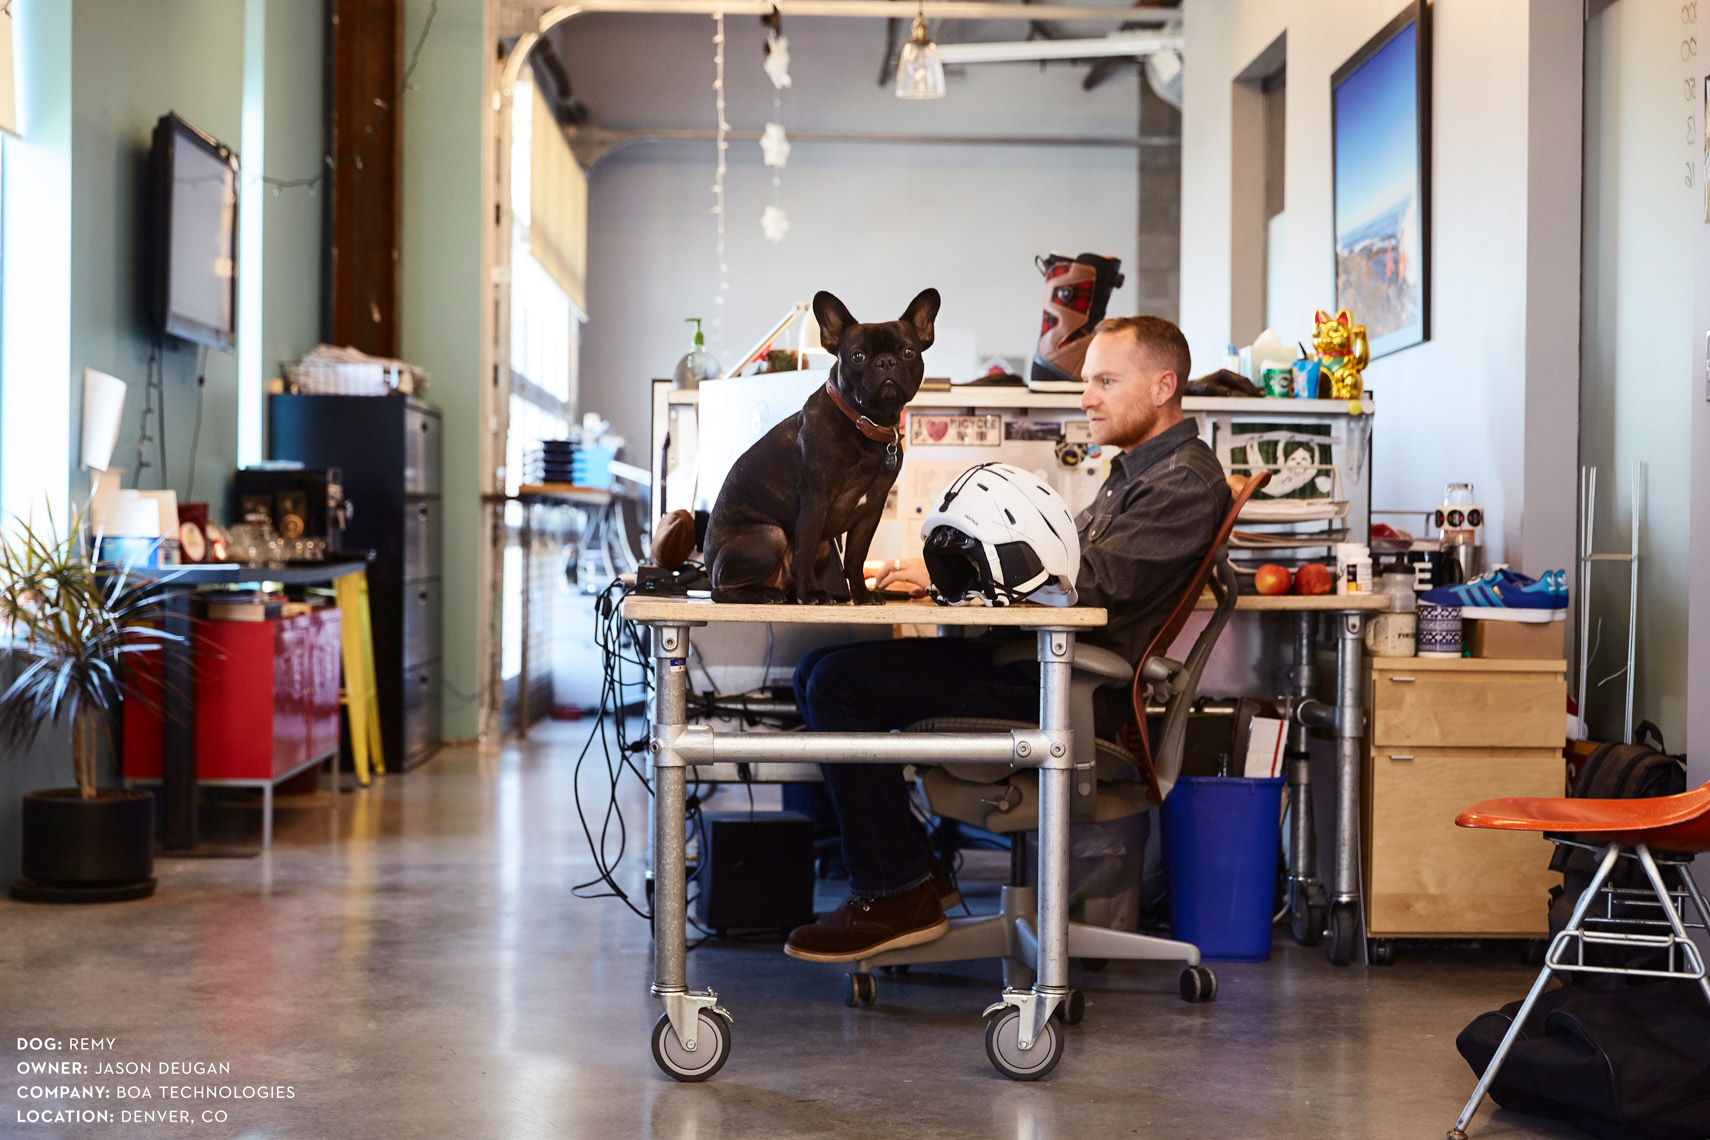 Dogs at work: Jason and his dog, Remy at Boa Technologies